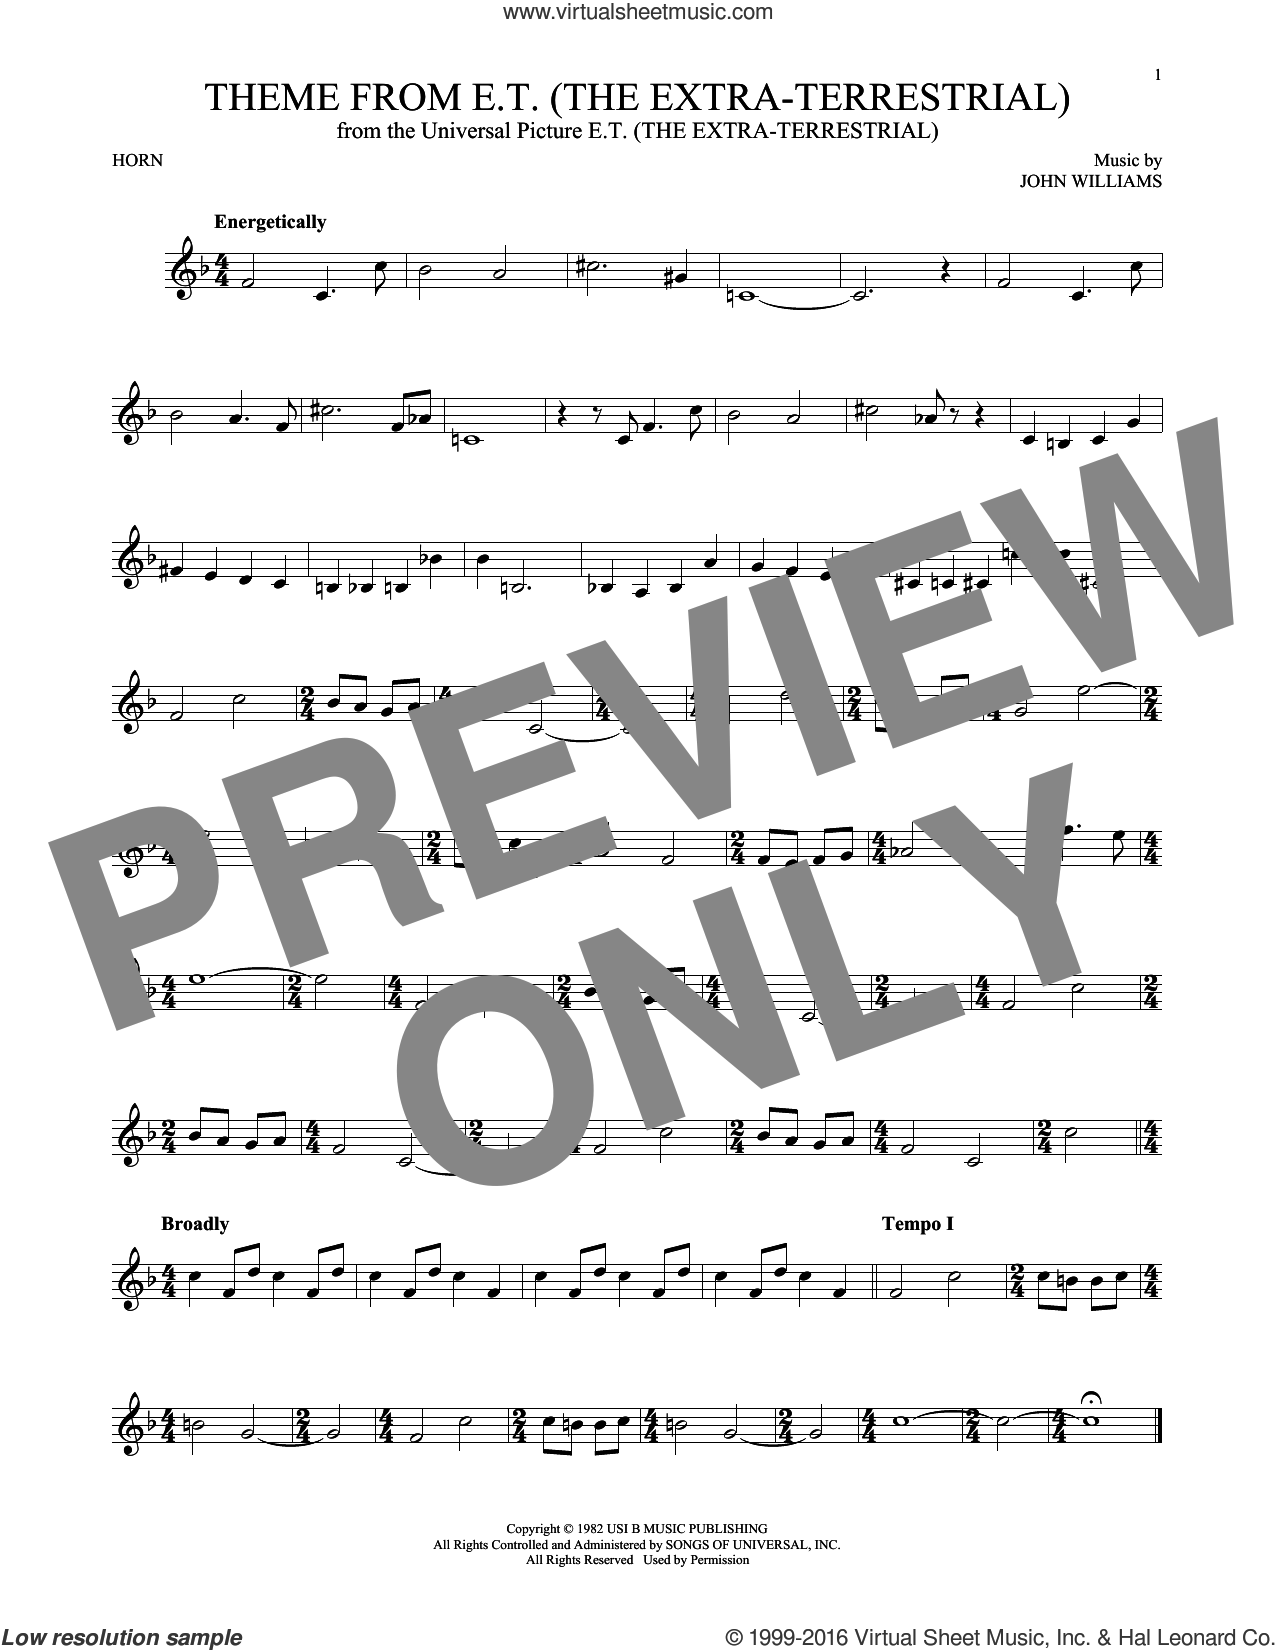 Theme From E.T. (The Extra-Terrestrial) sheet music for horn solo by John Williams, intermediate skill level